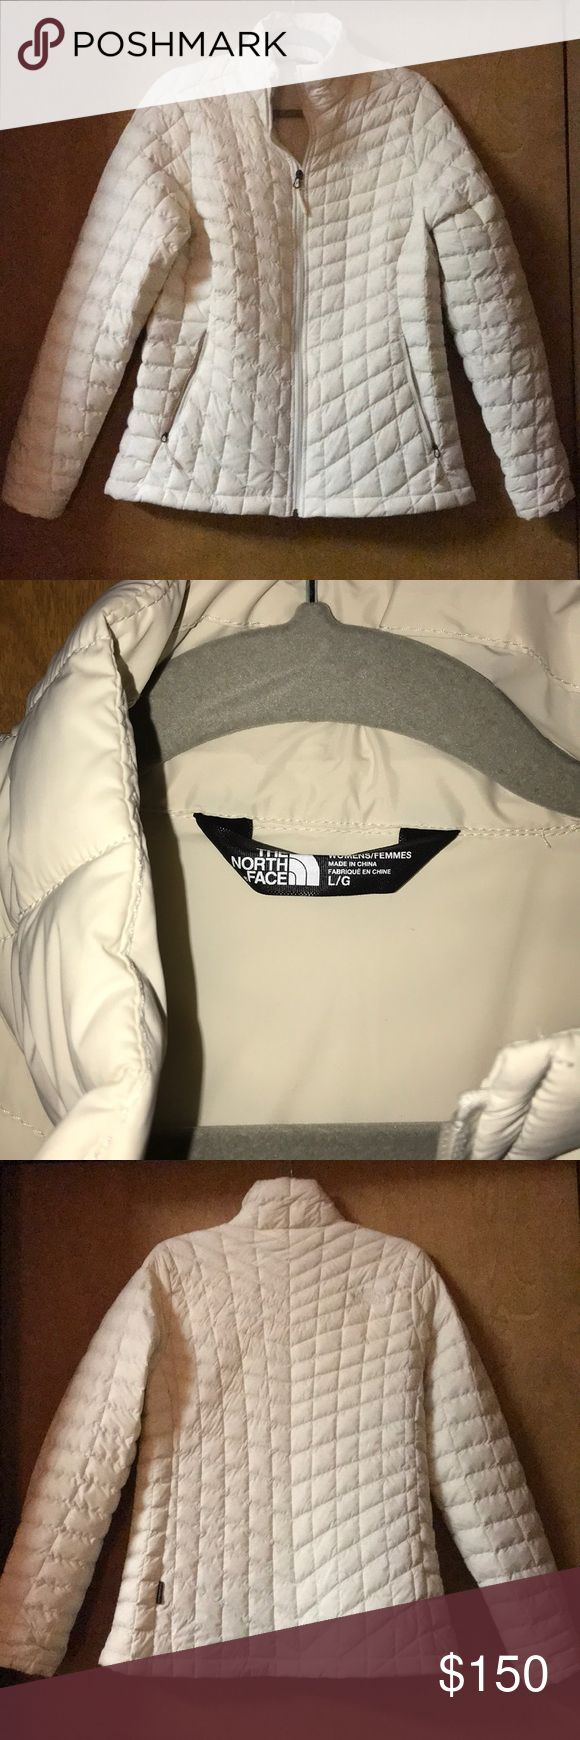 The North Face Stretch Thermoball Jacket Awesome vintage white colored thermoball jacket. Bought last year, wore a handful of times. Like new condition. The North Face Jackets & Coats Puffers